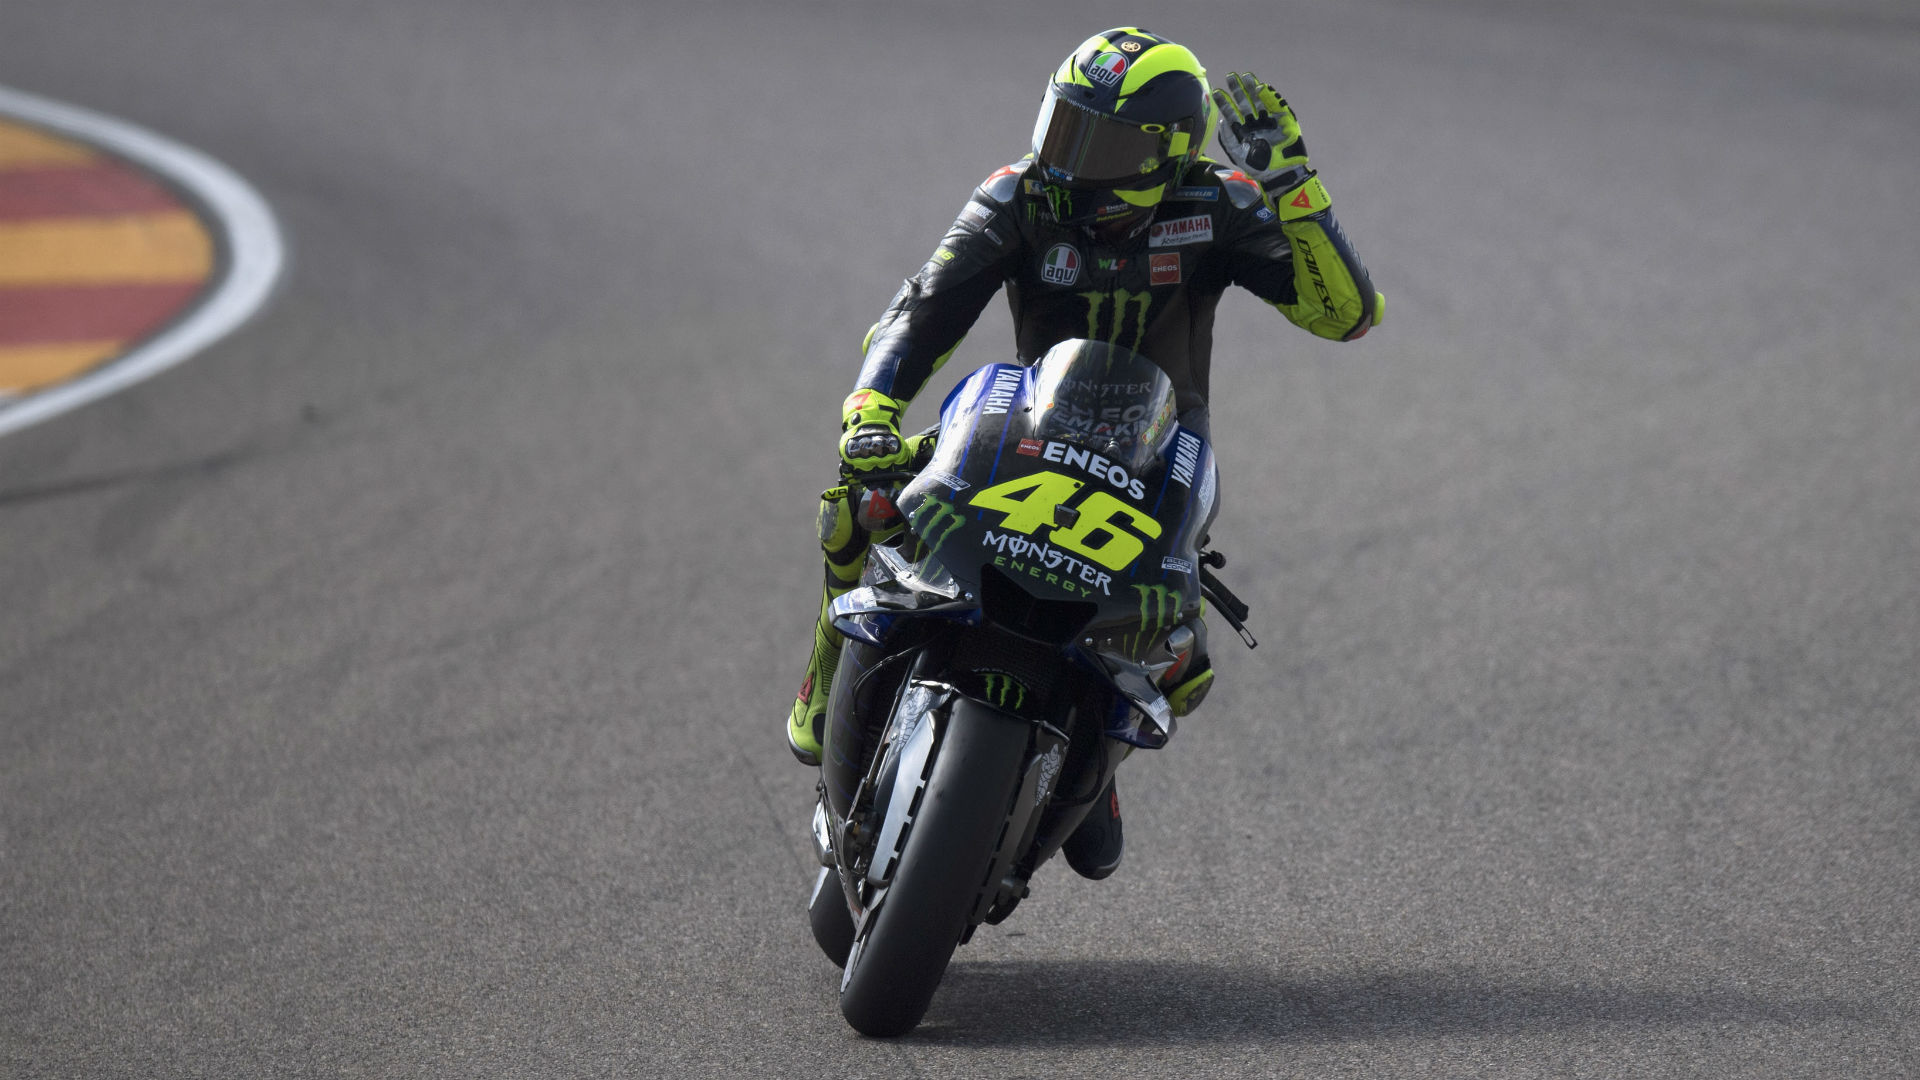 Valentino Rossi to decide on MotoGP future before 2020 season starts